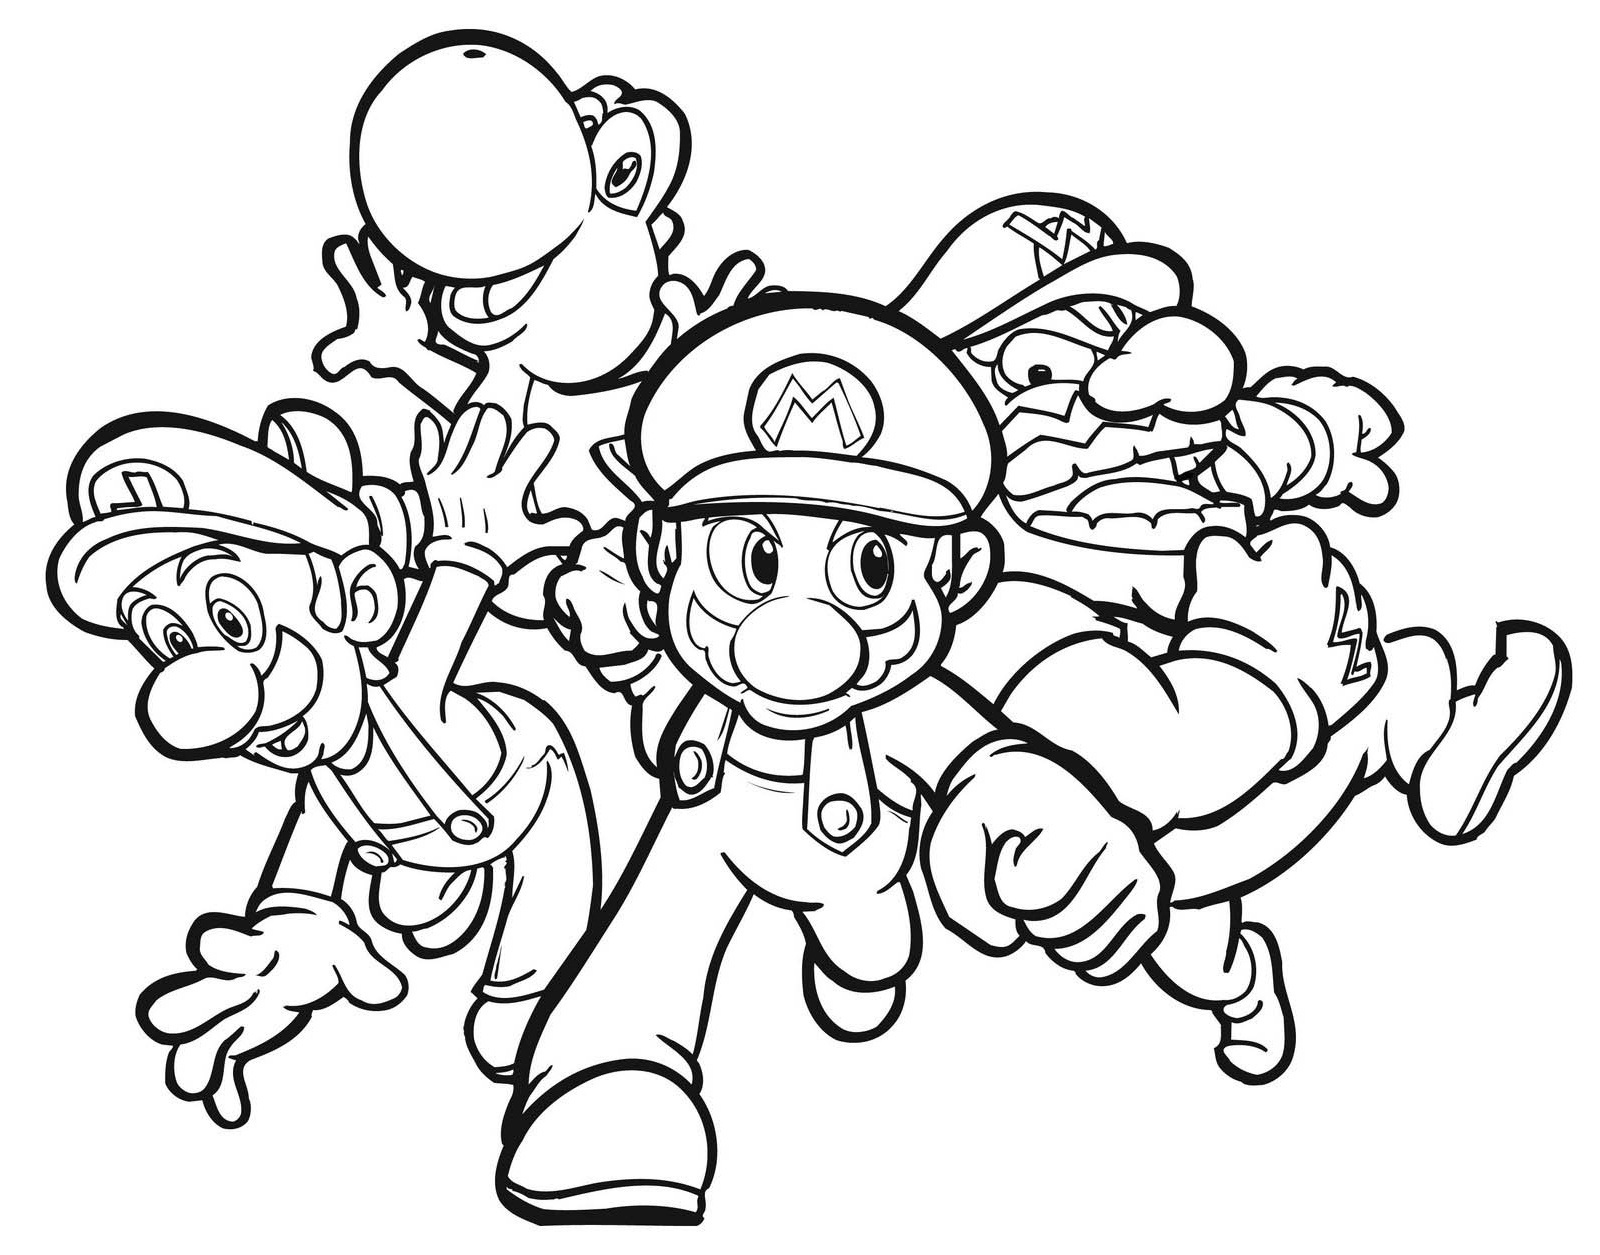 Coloring ~ Coloring Free Mario And Luigis Pdf Printable Pictures - Mario Coloring Pages Free Printable